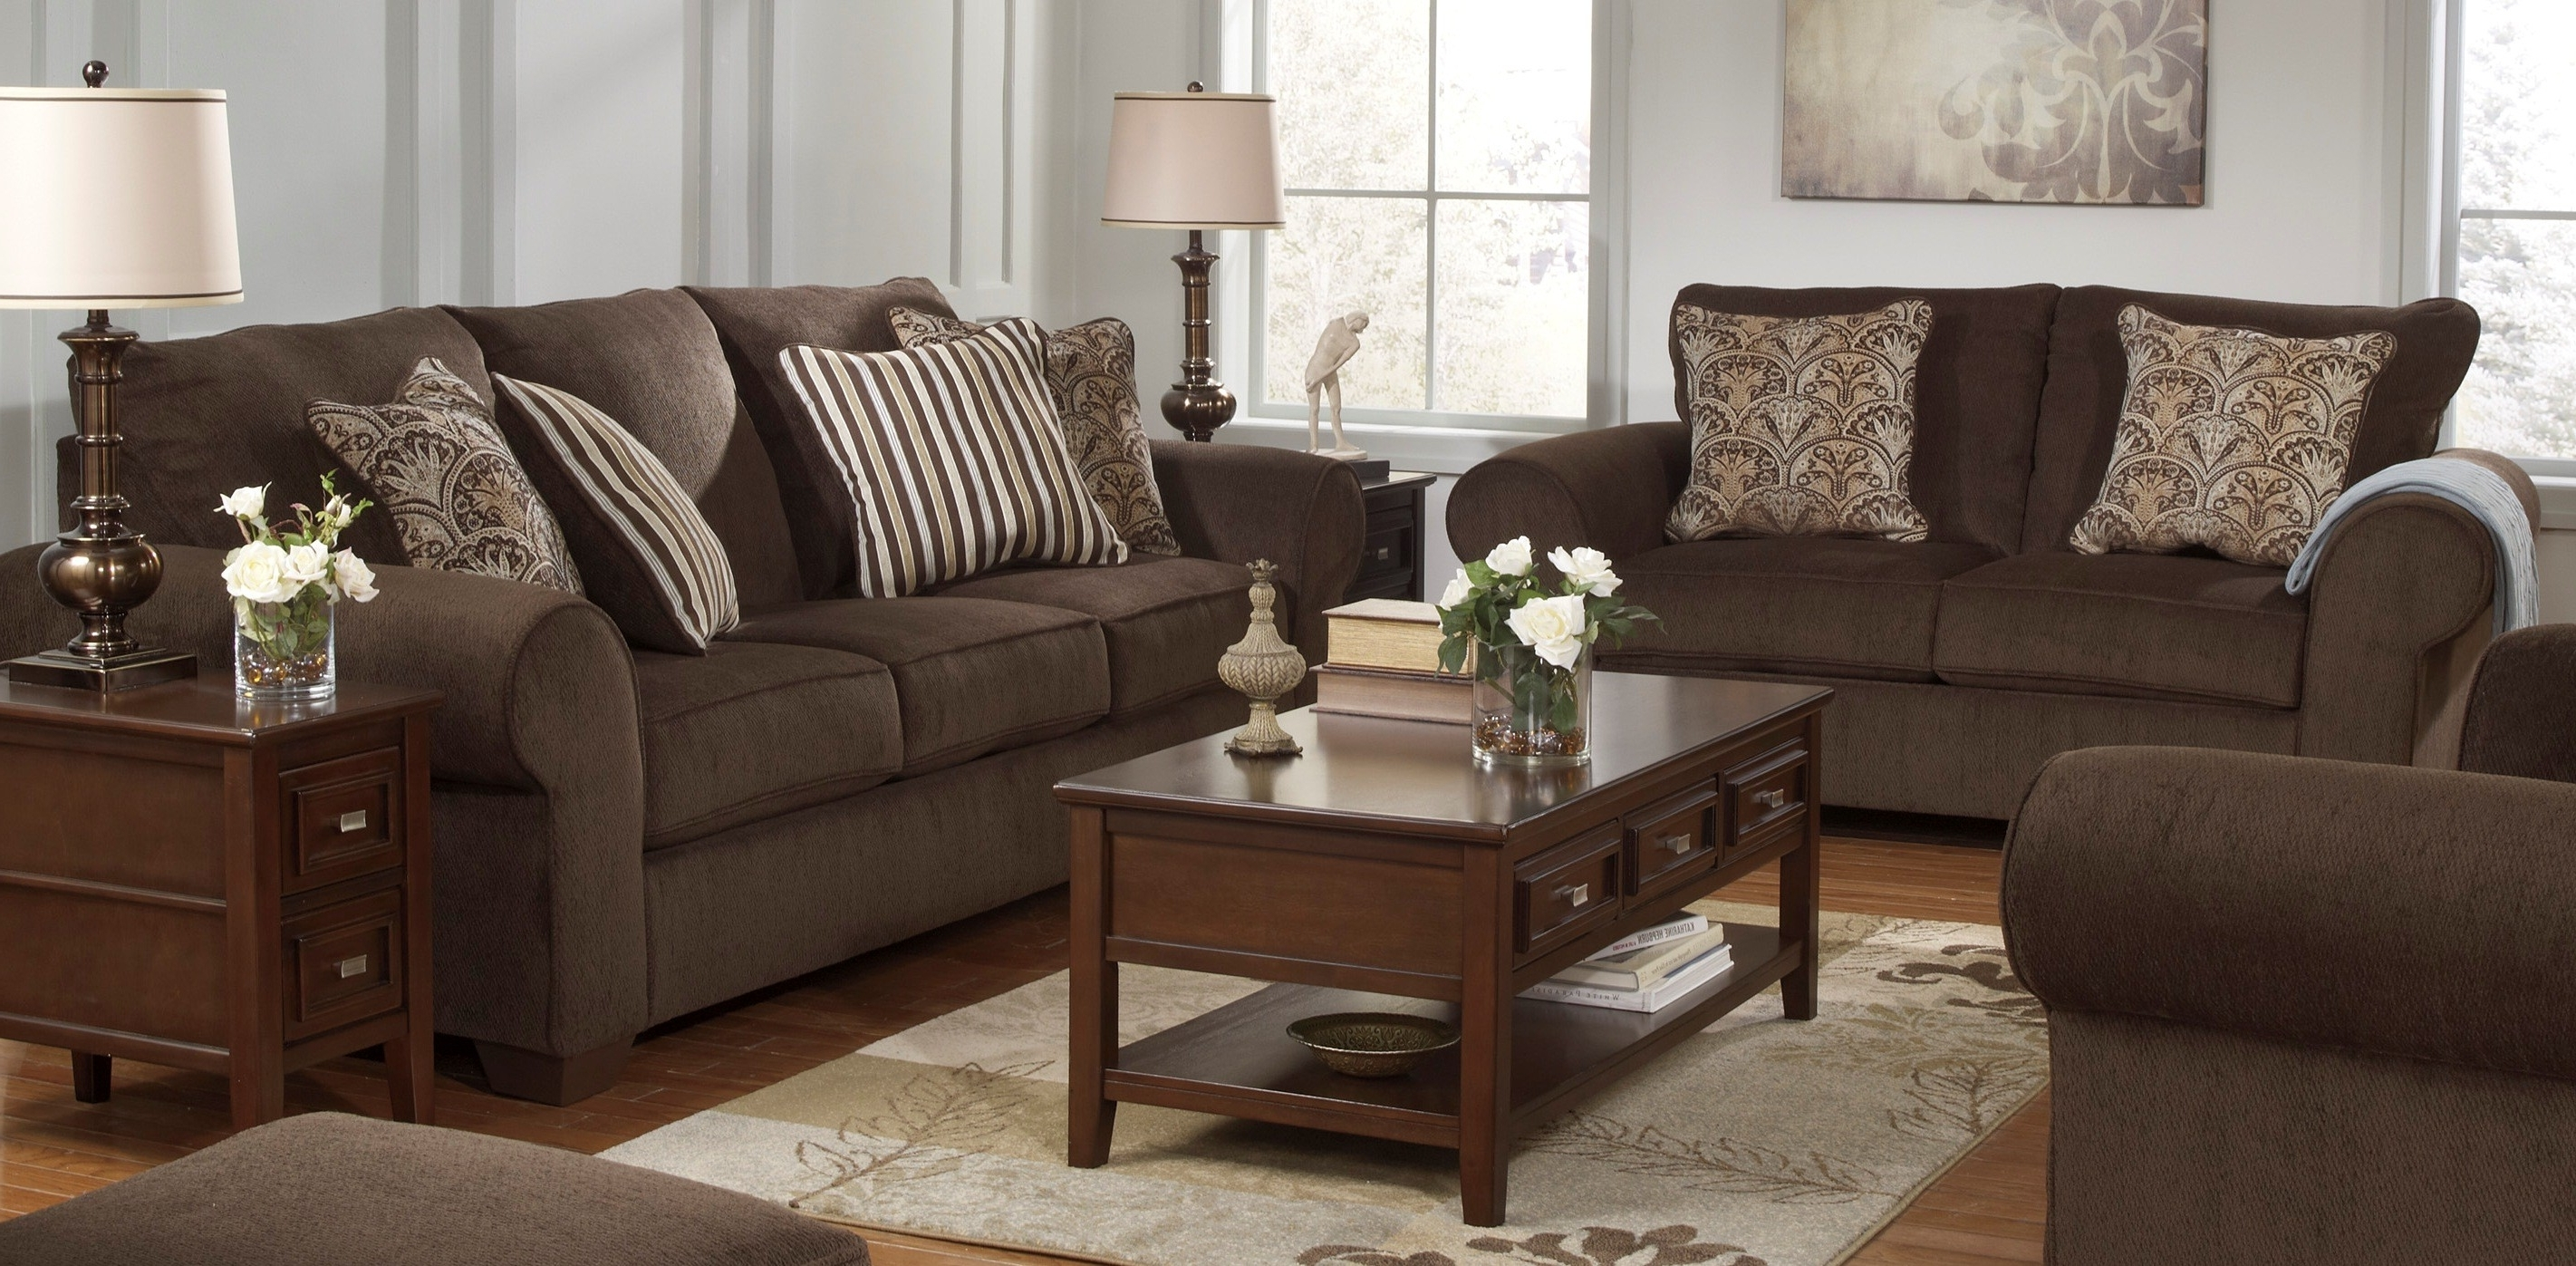 Most Popular Living Room Sofa Chairs Regarding Uncategorized (View 10 of 15)